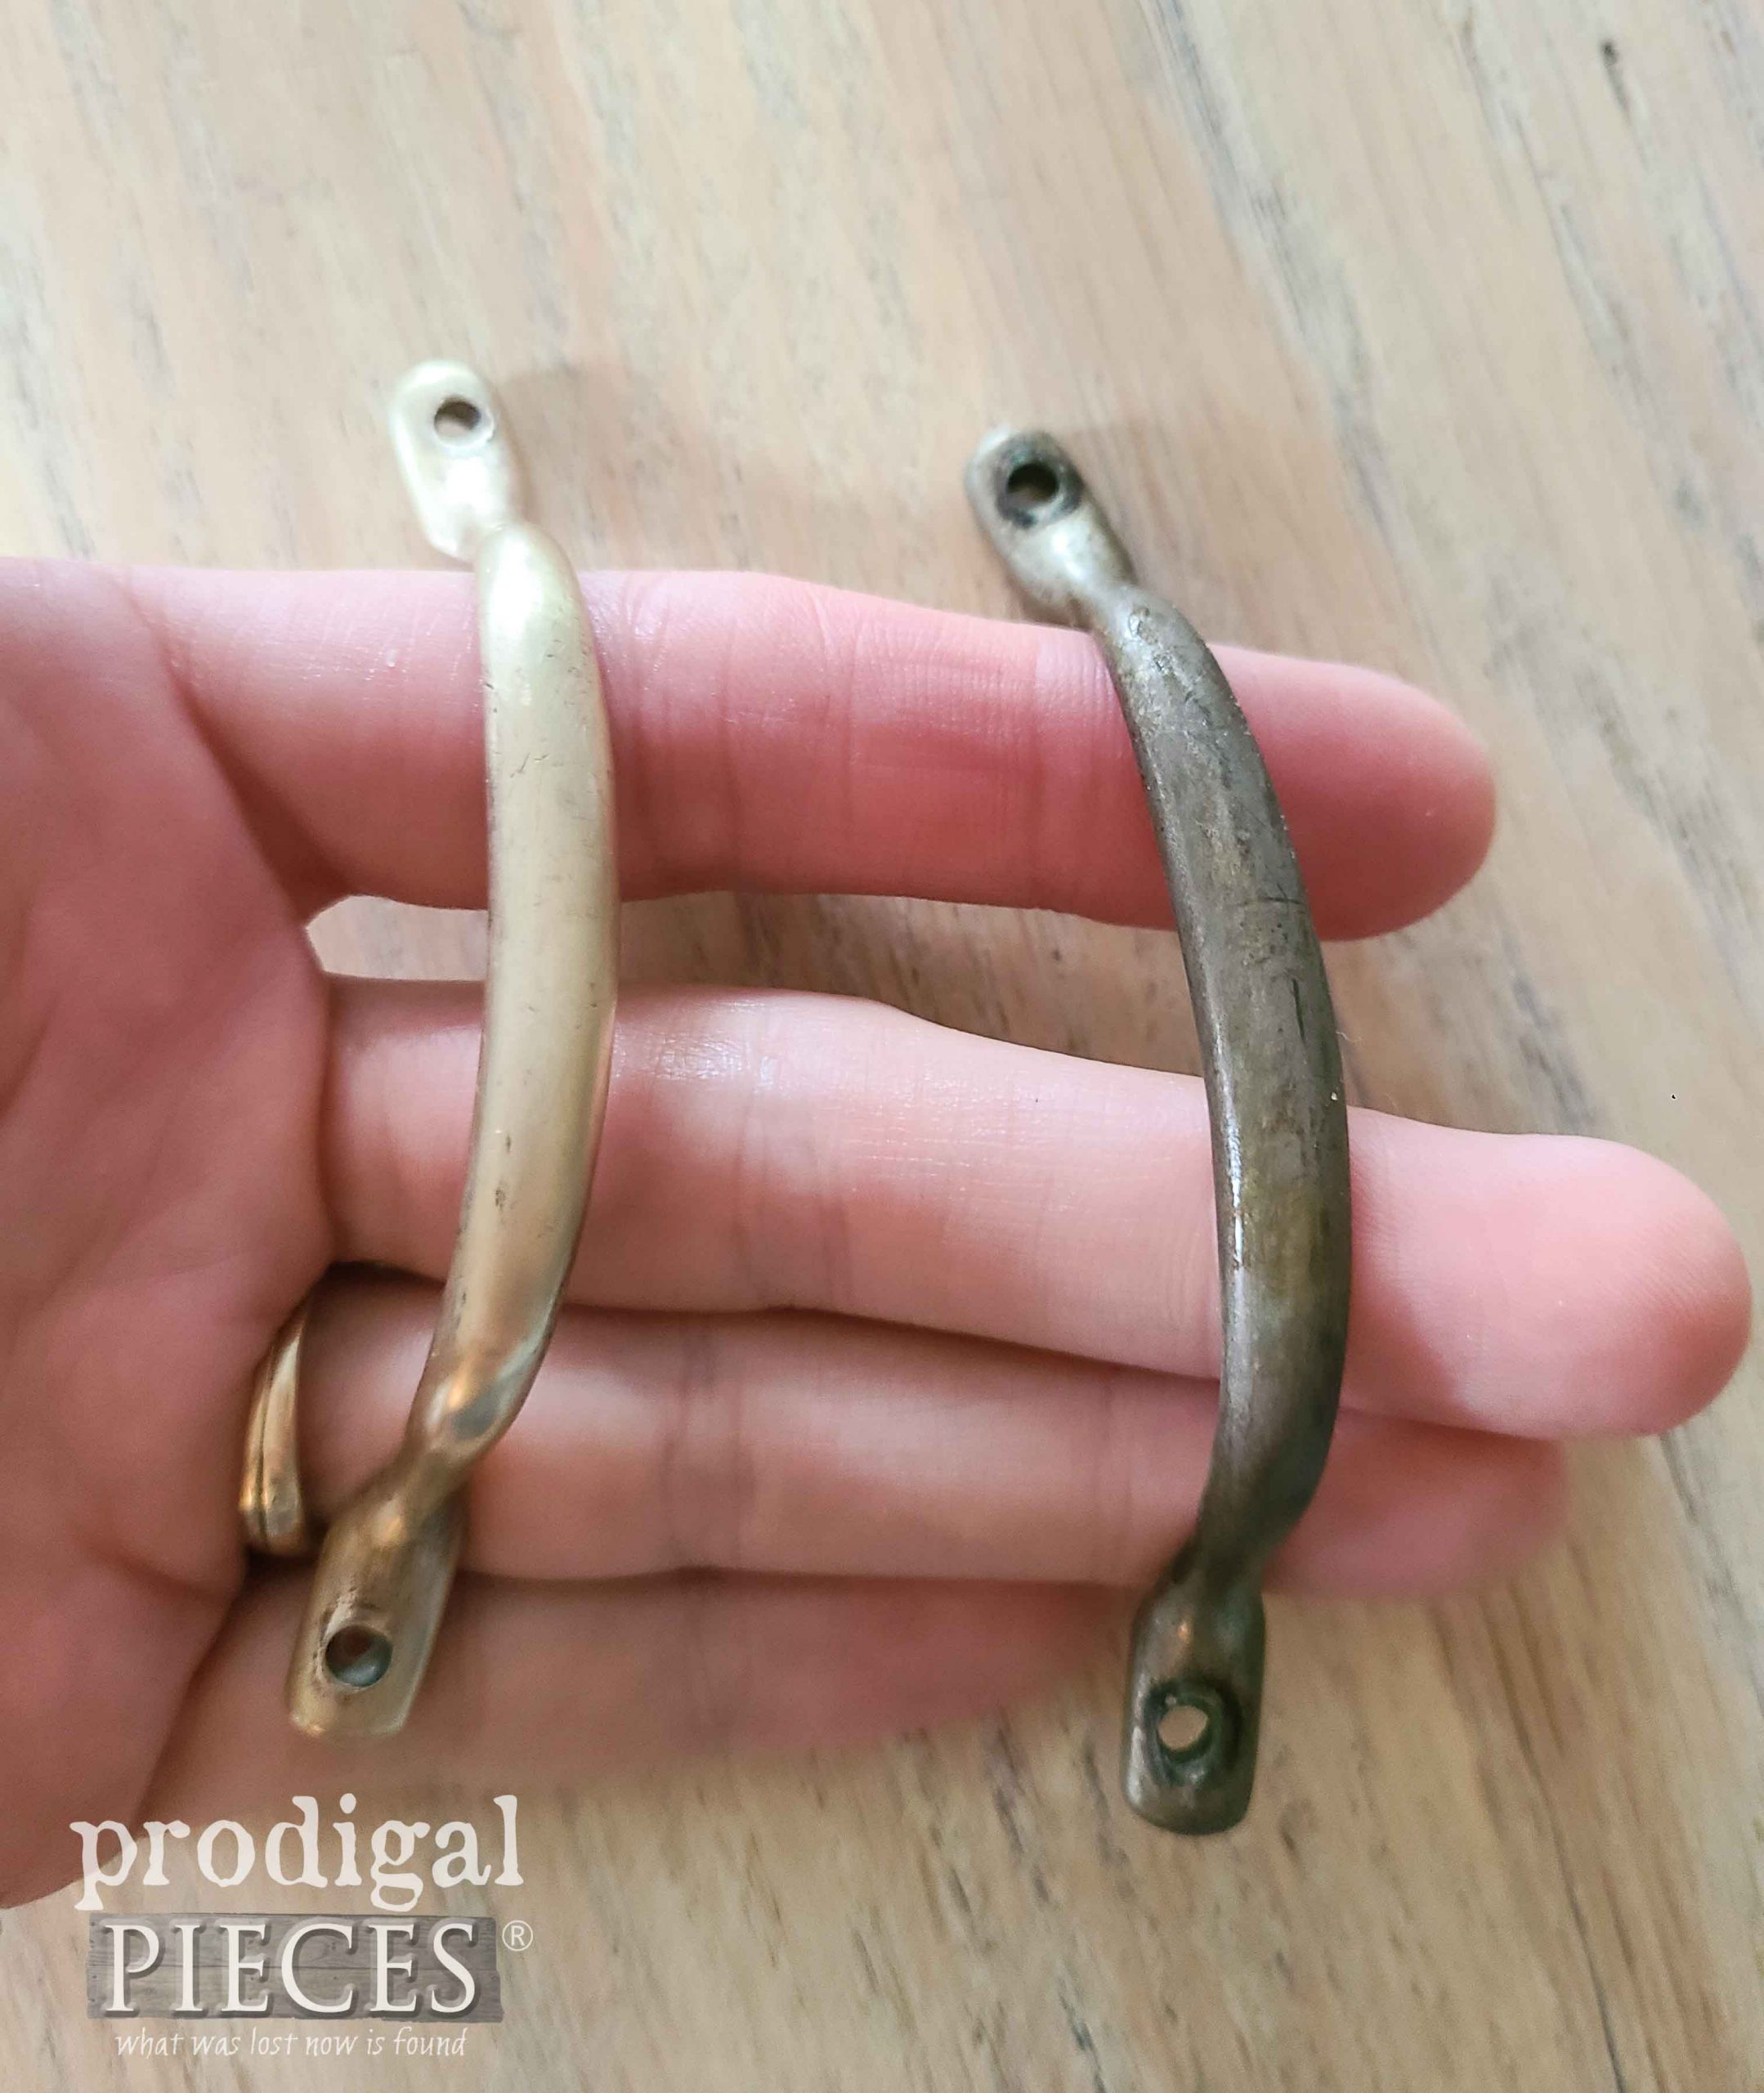 Brass Handles Polished with Bar Keepers Friend | prodigalpieces.com #prodigalpieces